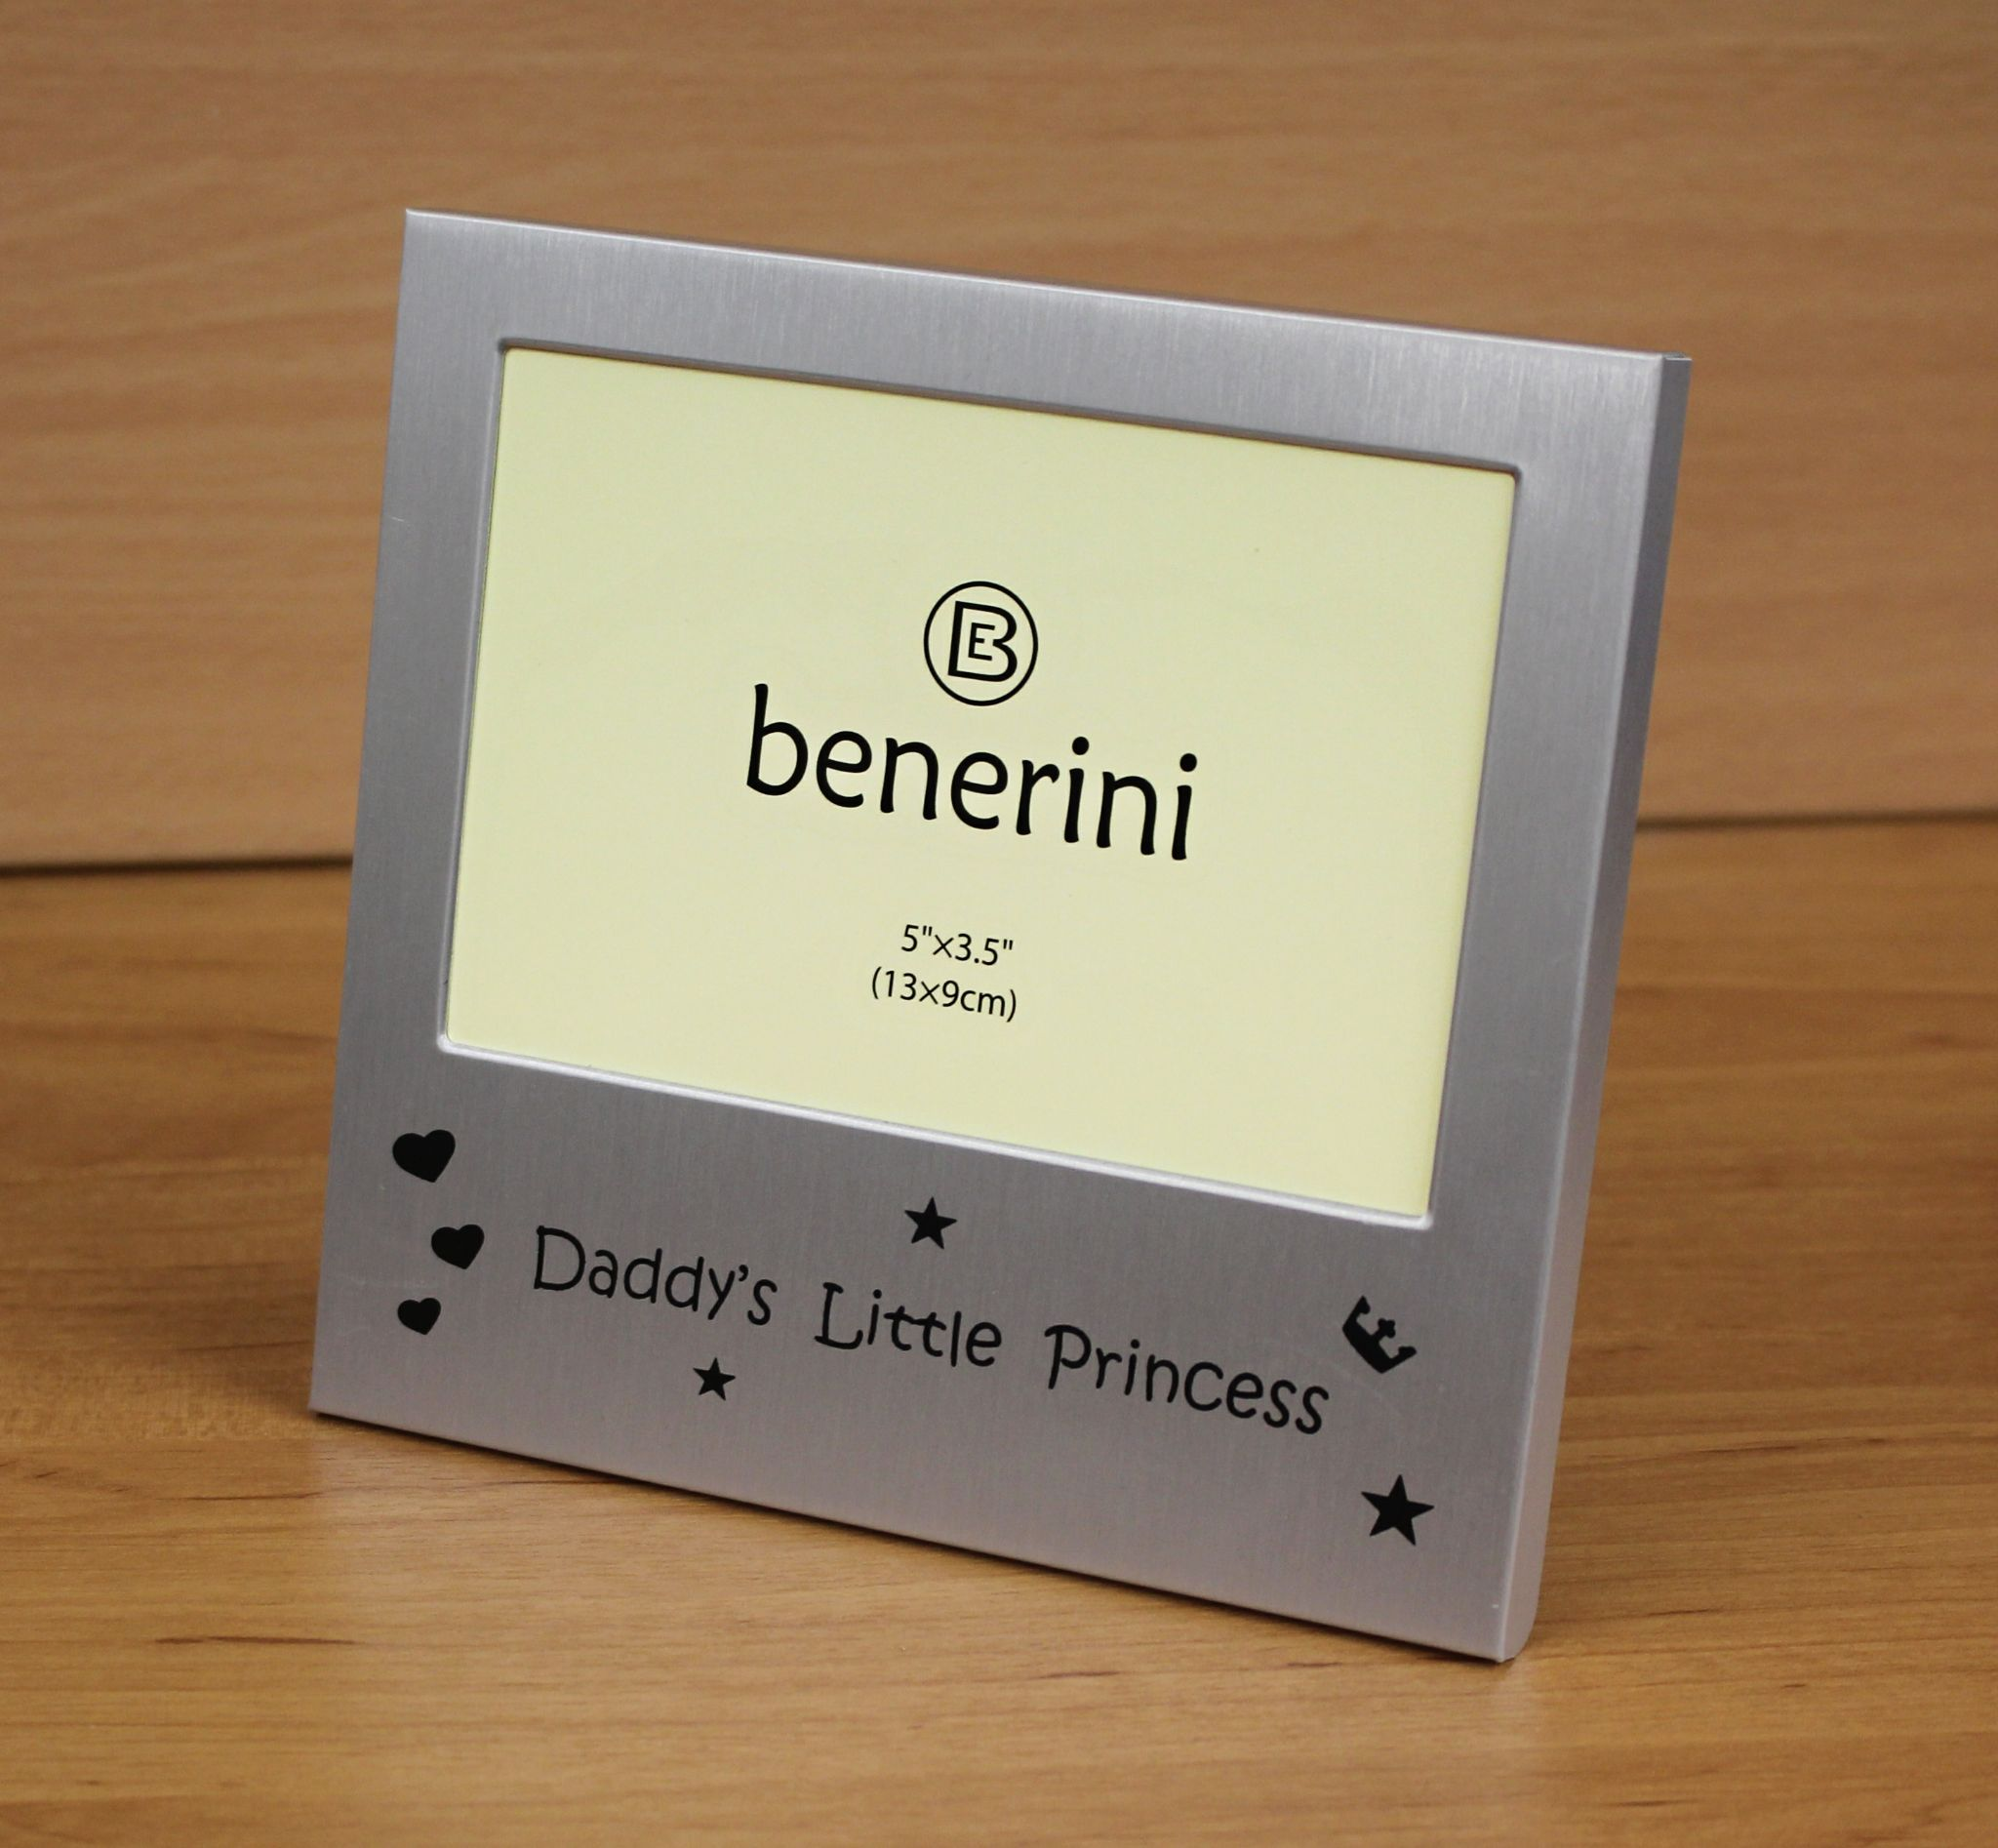 Daddys Little Princess Photo Frame Size 5 X 3 Inches Brushed Aluminium Satin Silver Colour